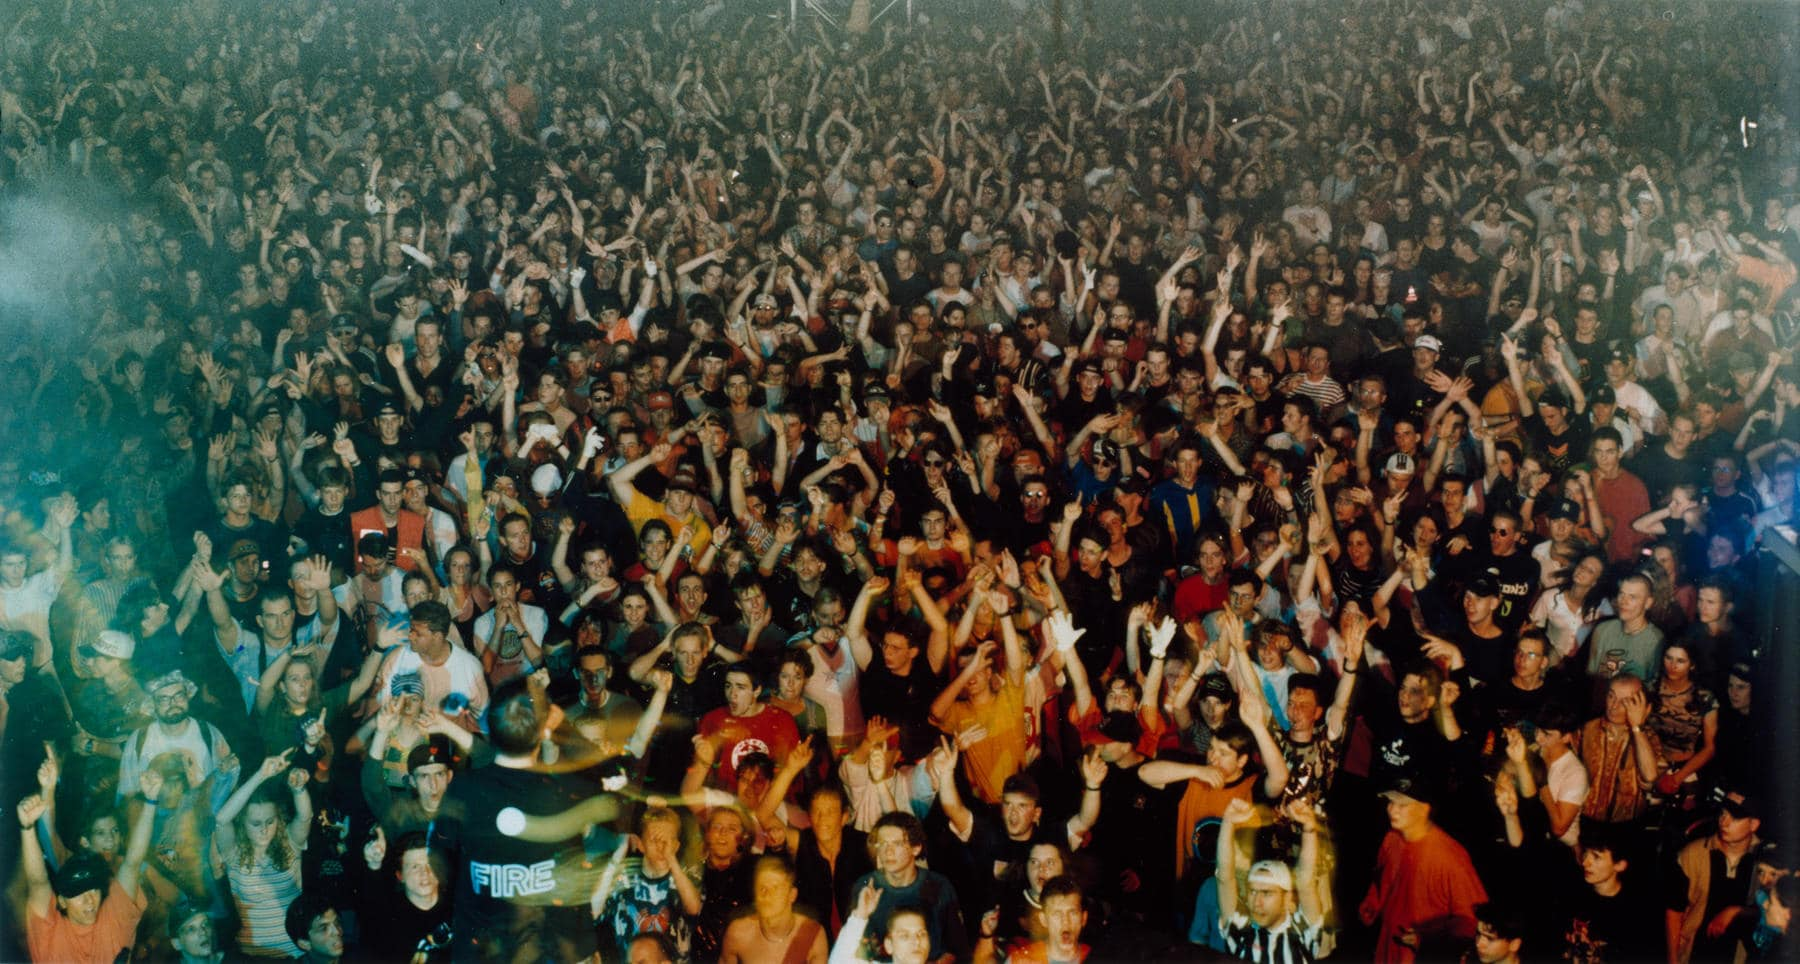 Photo: Union Rave 1995 by Andreas Gursky